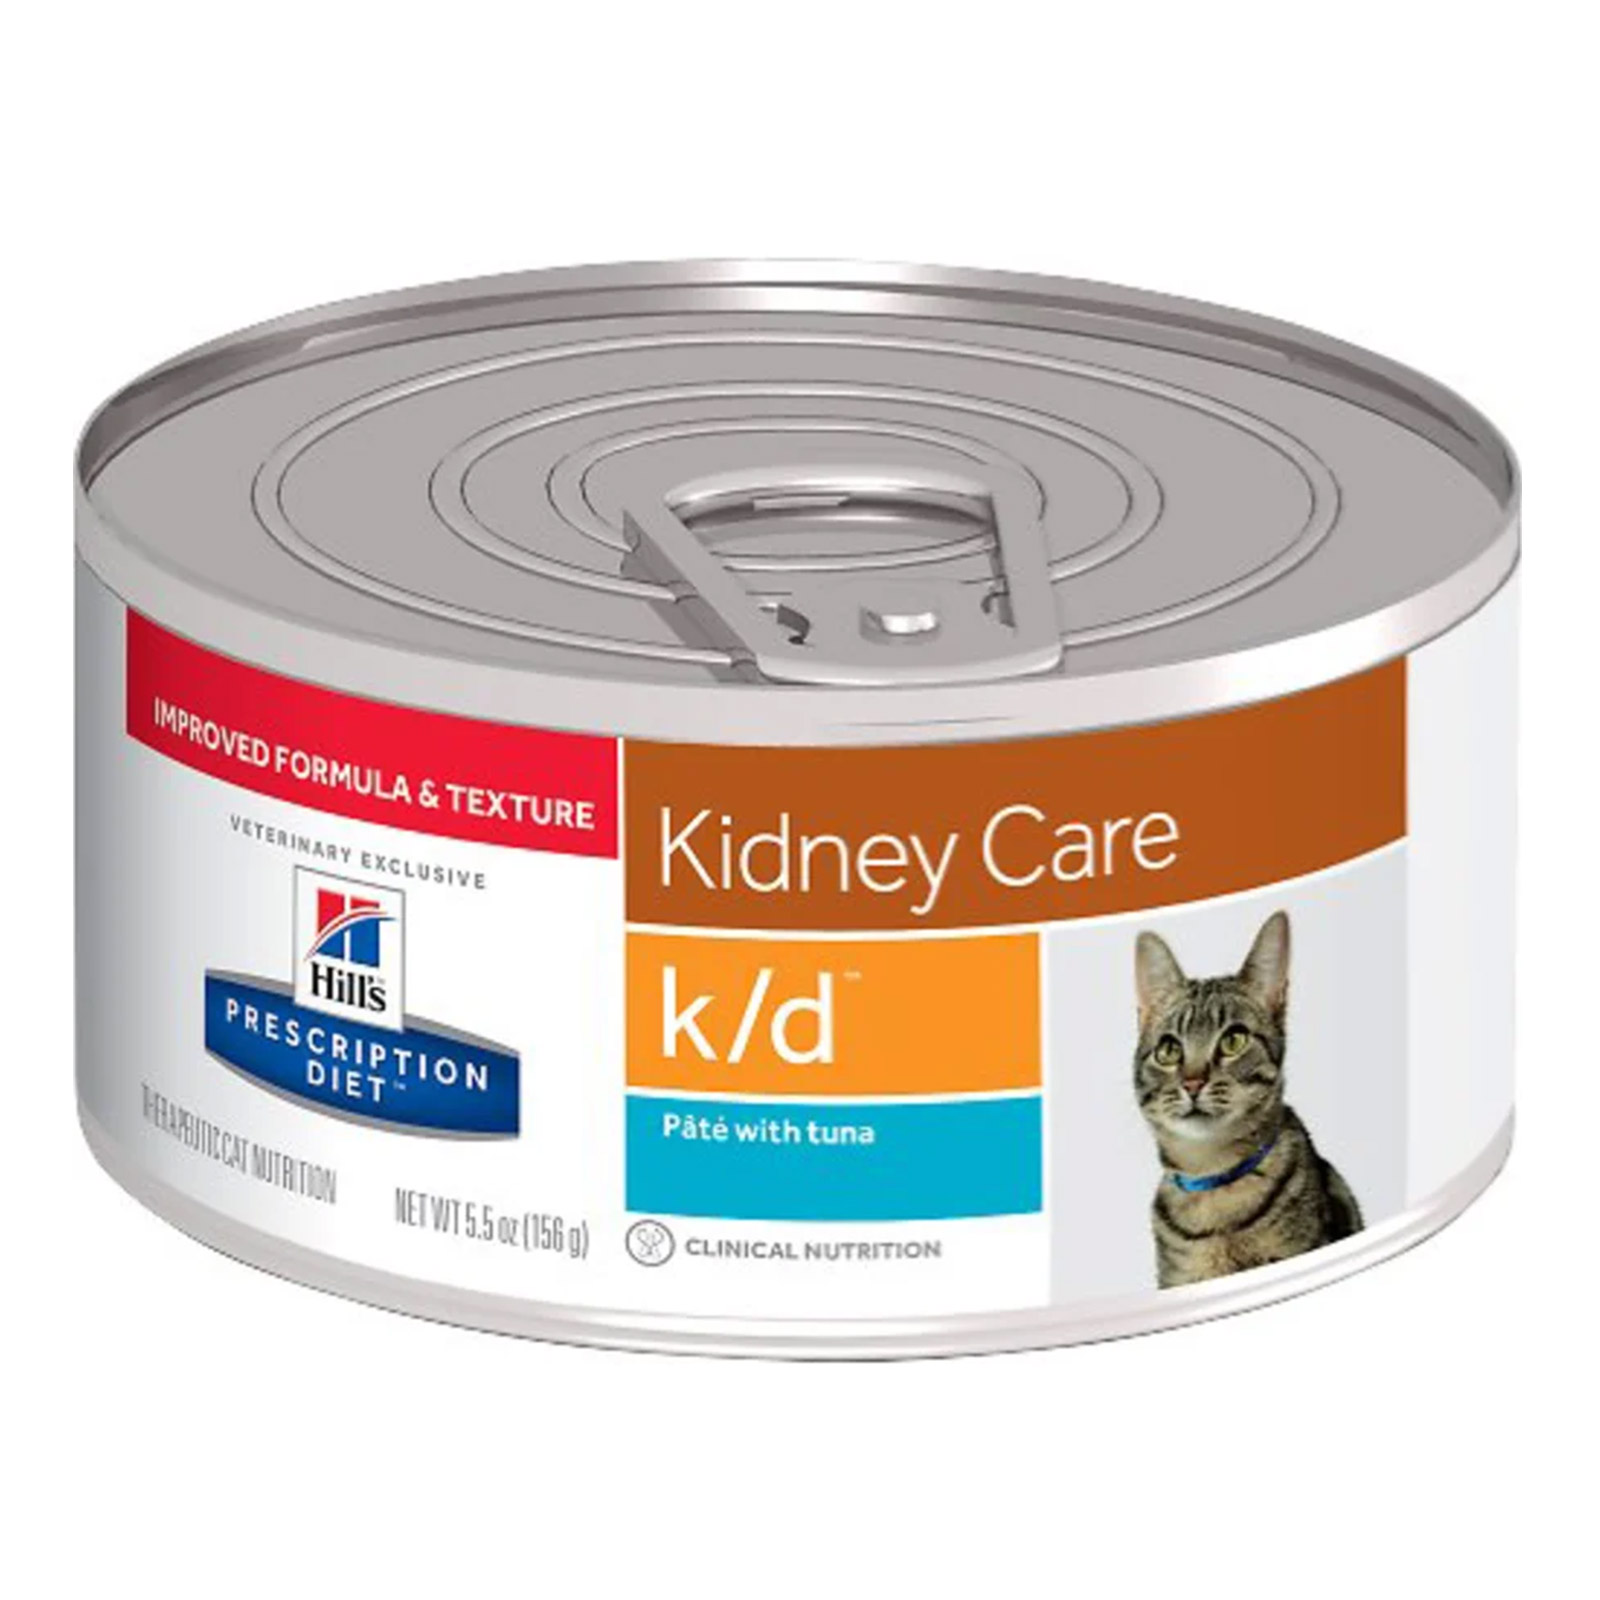 Hill's Prescription Diet k/d Kidney Care with Tuna Canned Cat Food